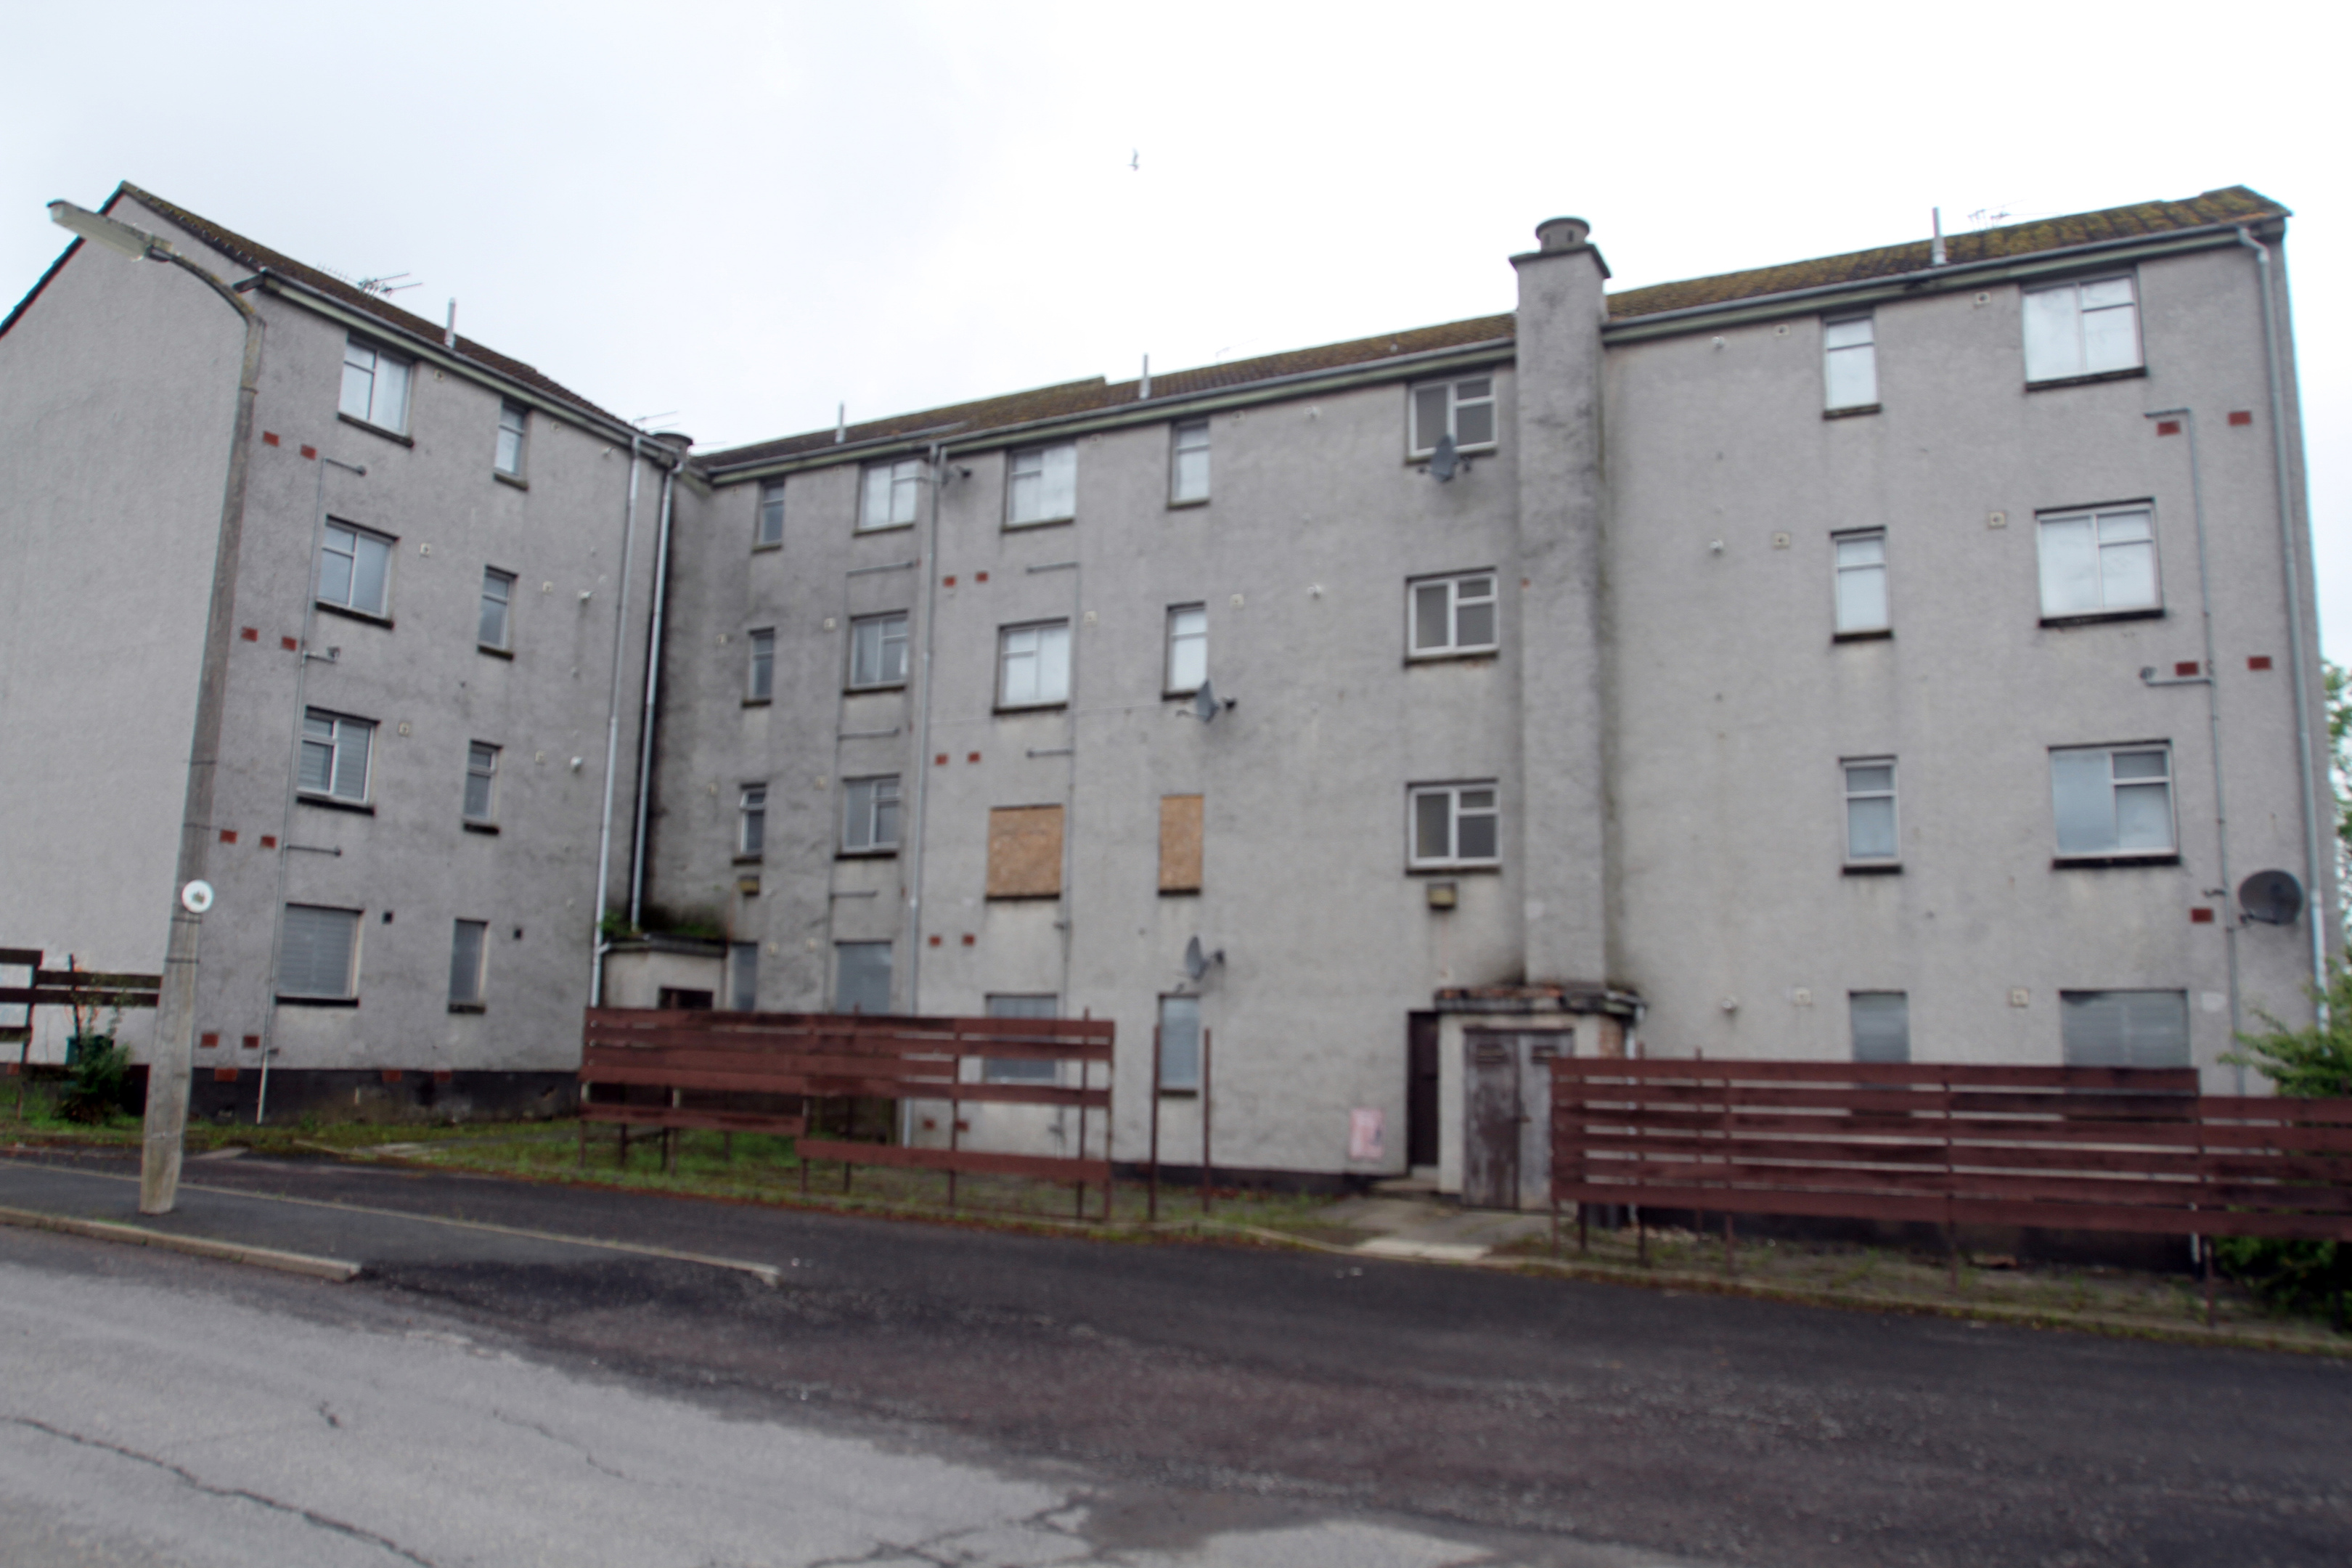 The block of flats on Hebrides Drive in Mill o' Mains.